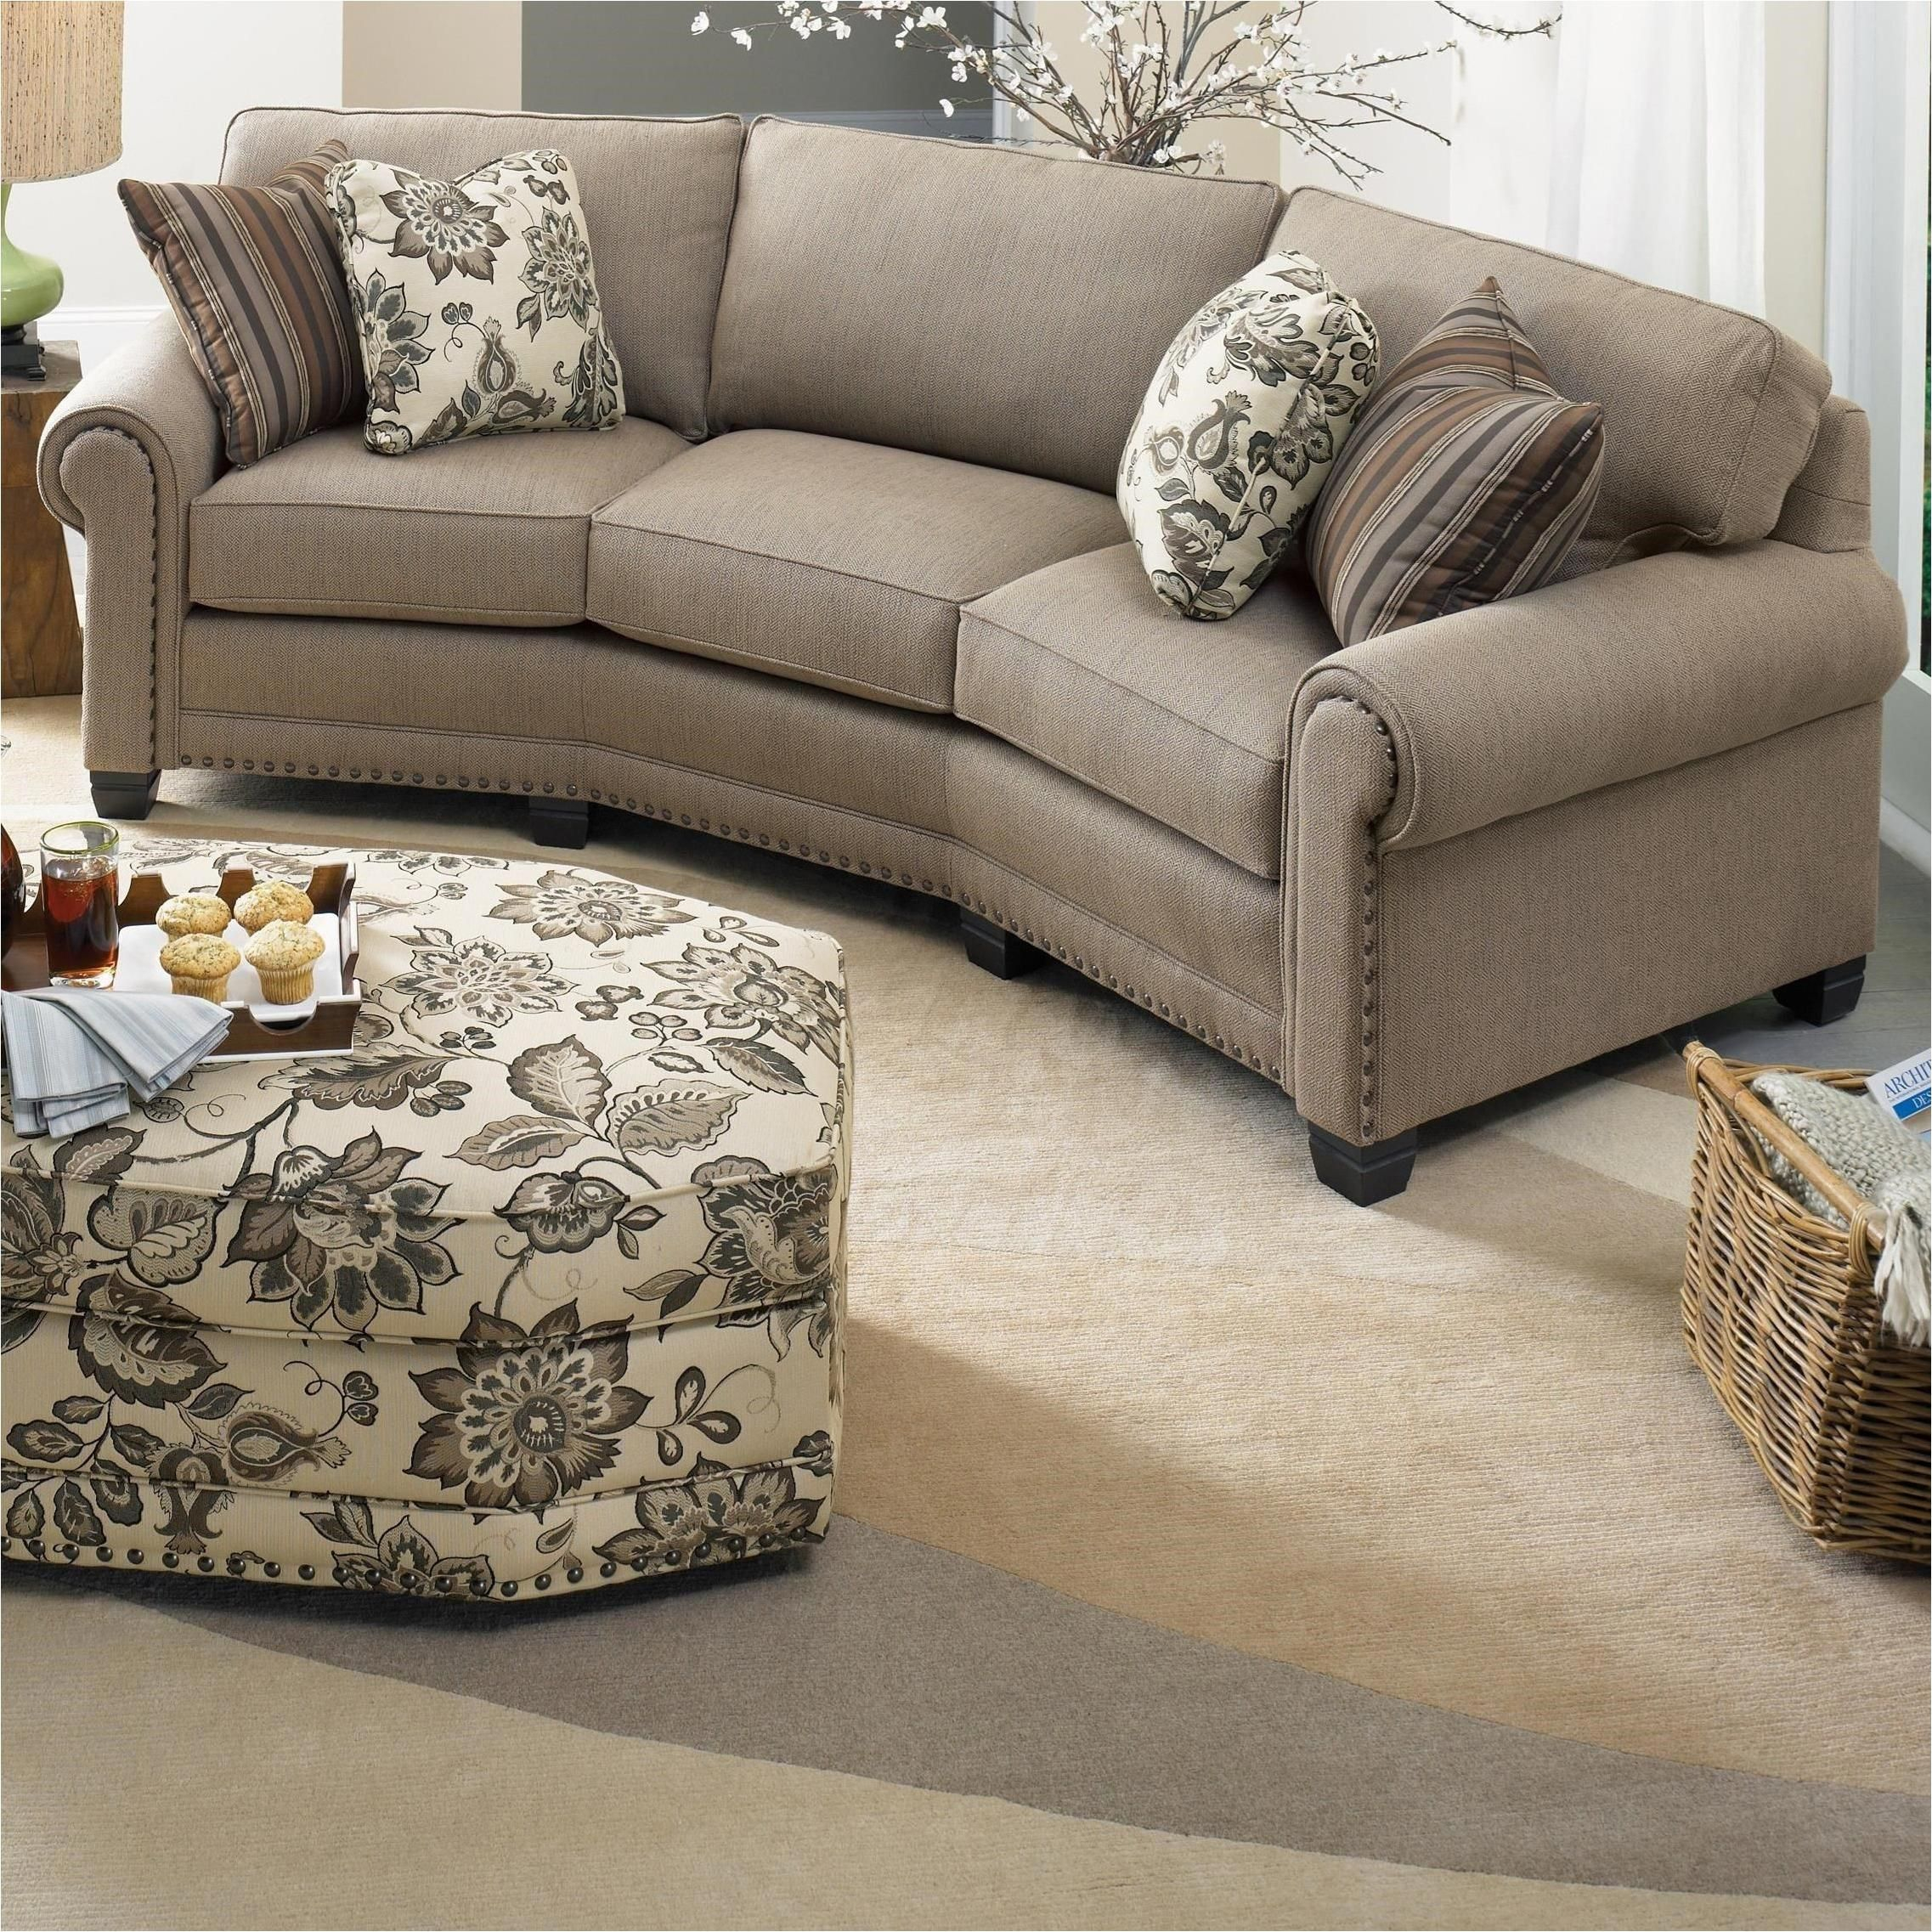 Leather Living Room Furniture Sets New Furniture Free Tv With with regard to 14 Smart Ideas How to Upgrade Living Room Set With Free TV